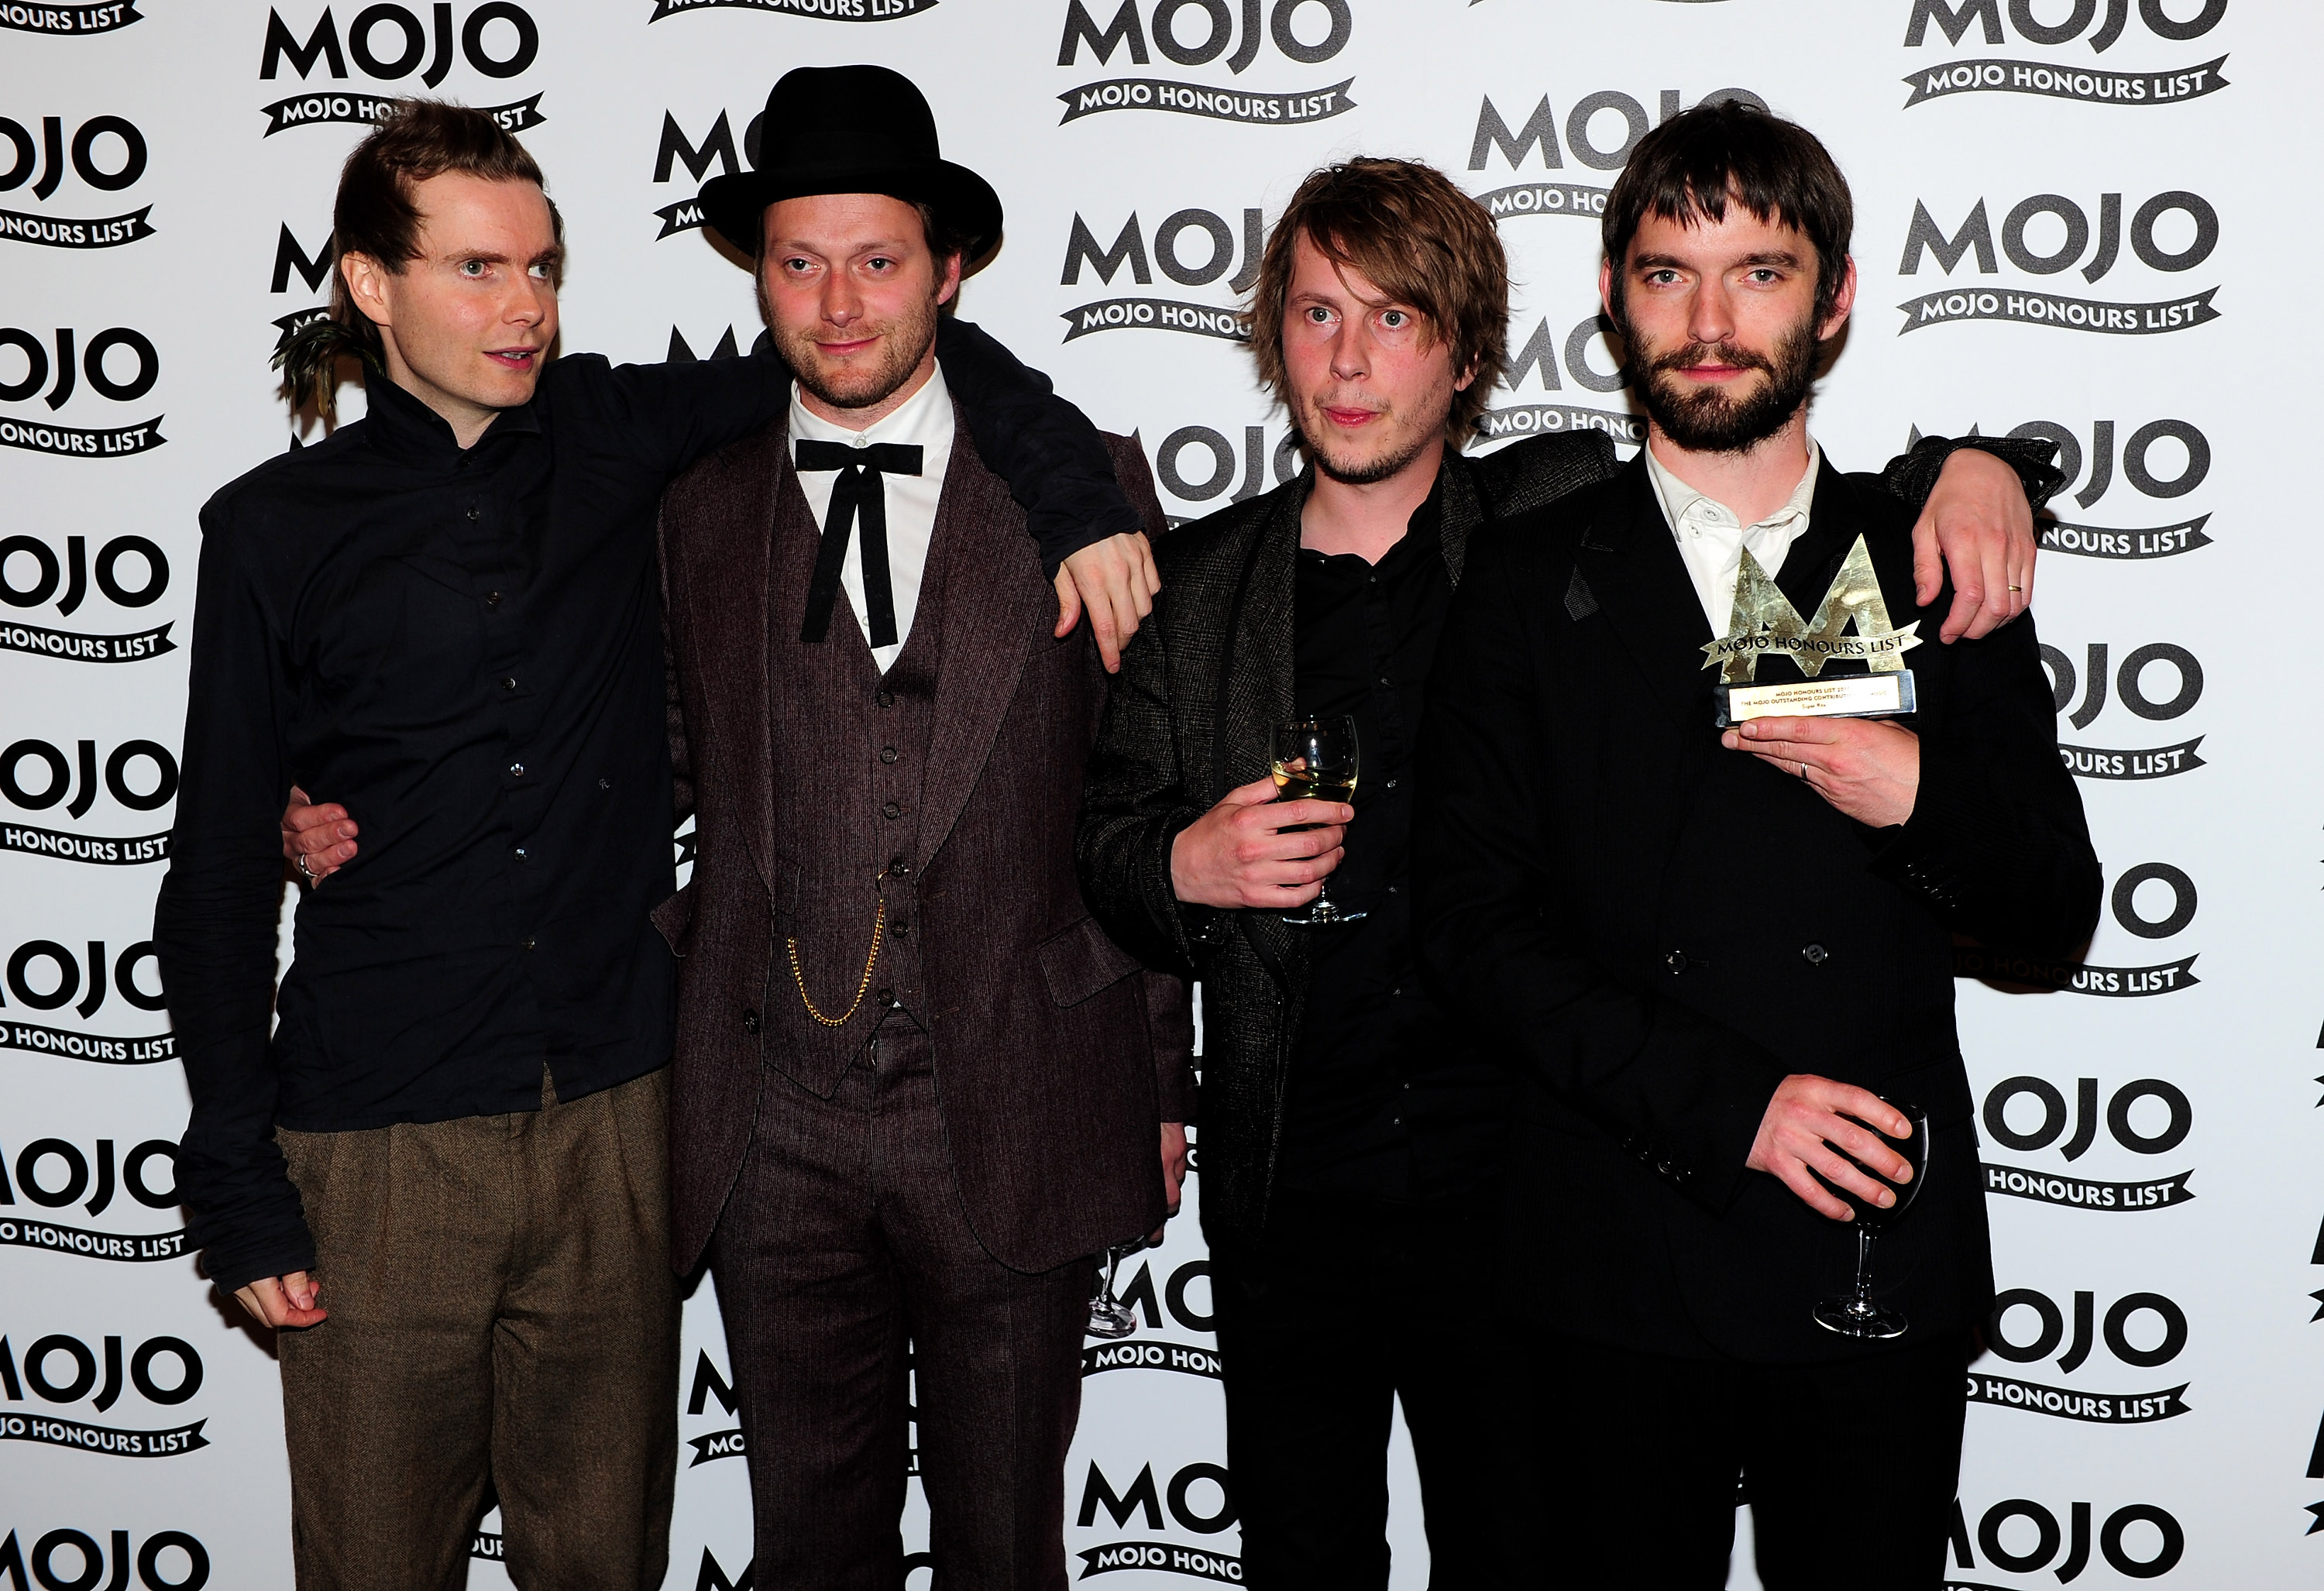 Sigur Ros pose with the MOJO Outstanding Contribution to Music Award. (Photo by Gareth Cattermole/Getty Images)